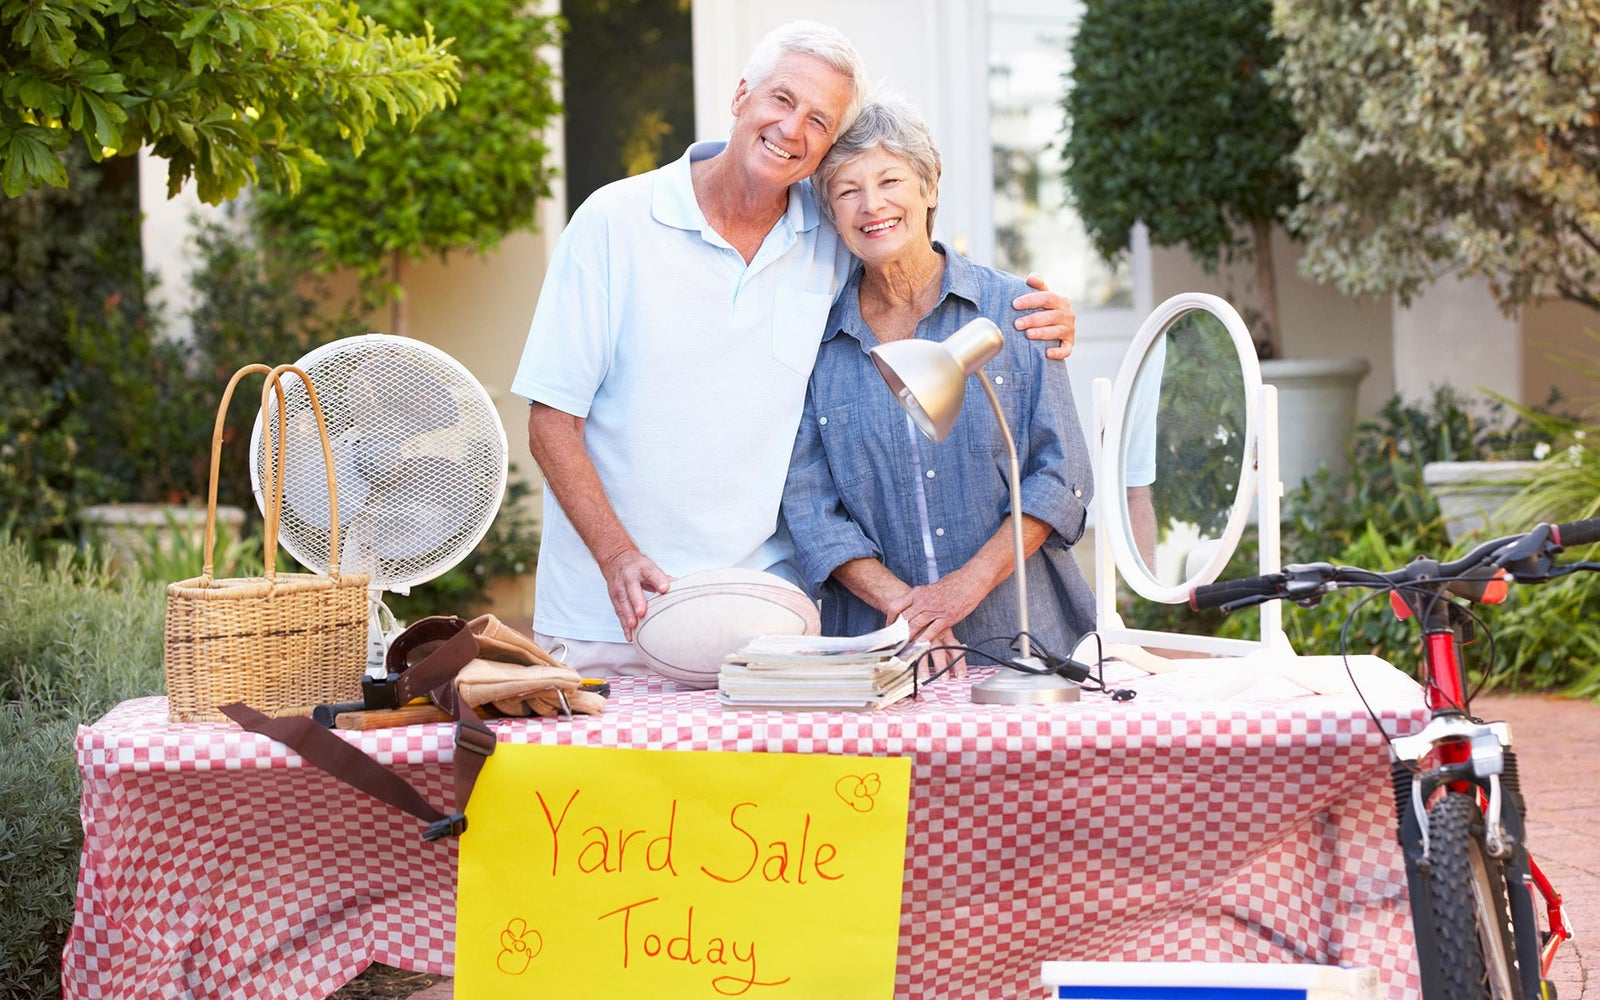 Estate Sales - A Quick Way to Purge and Earn Extra Cash